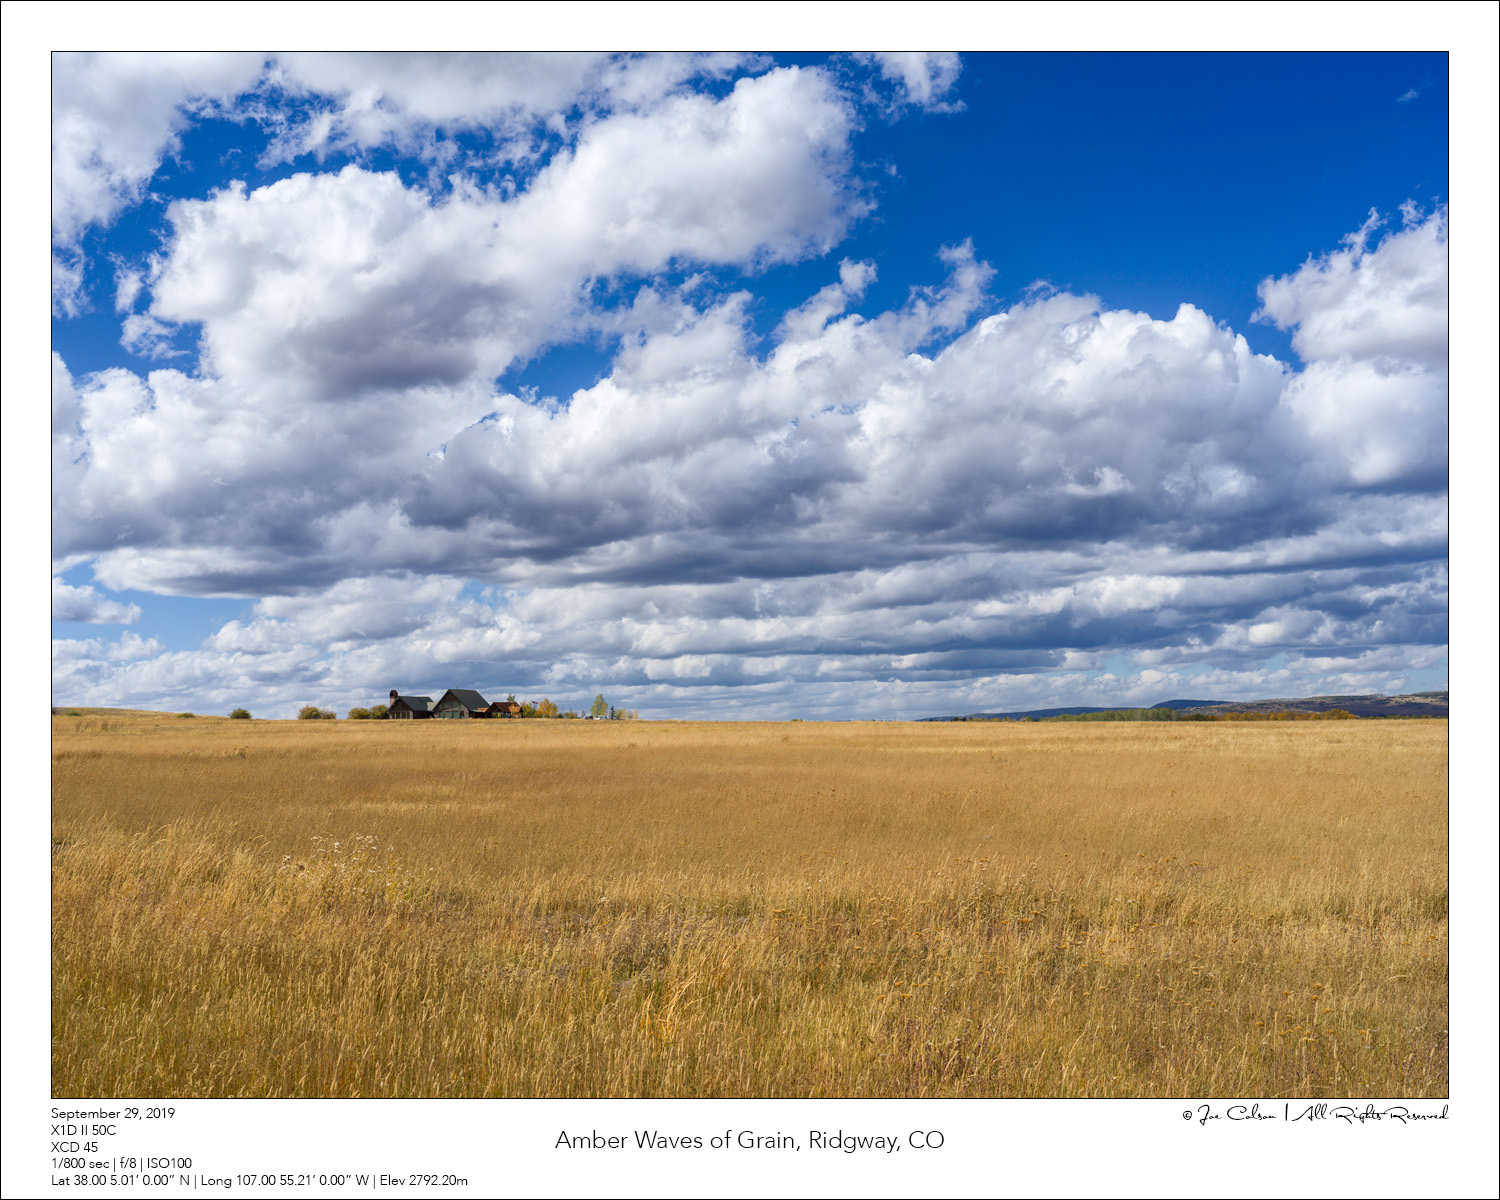 Amber Waves of Grain, Ridgway, CO